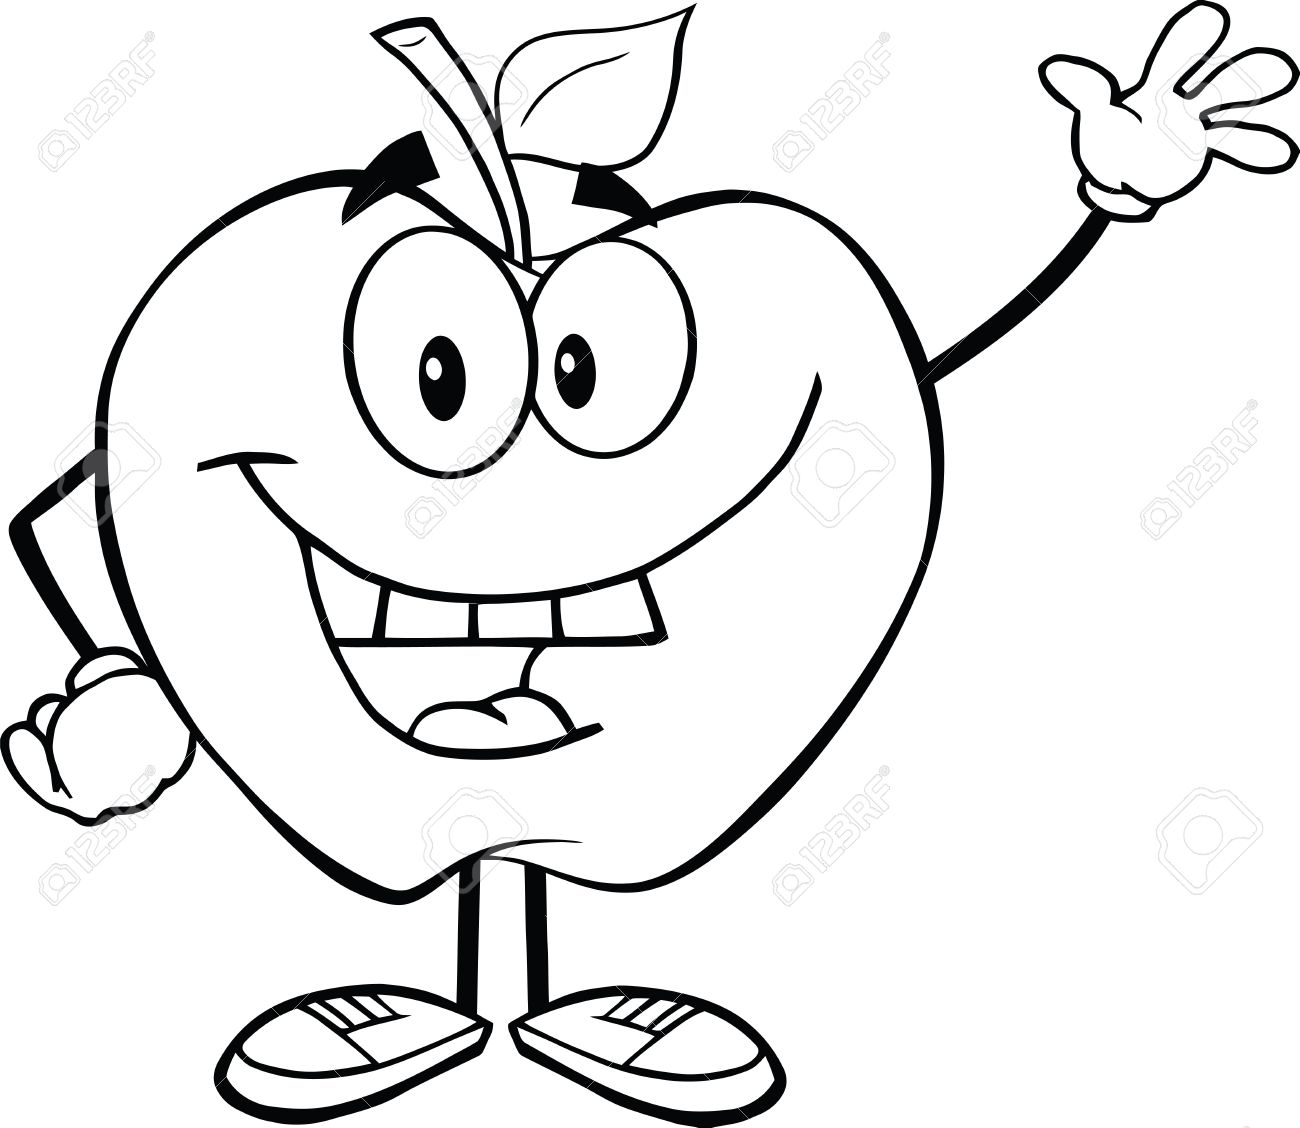 Apple Cartoon Clipart Black And White - Clipground-8282